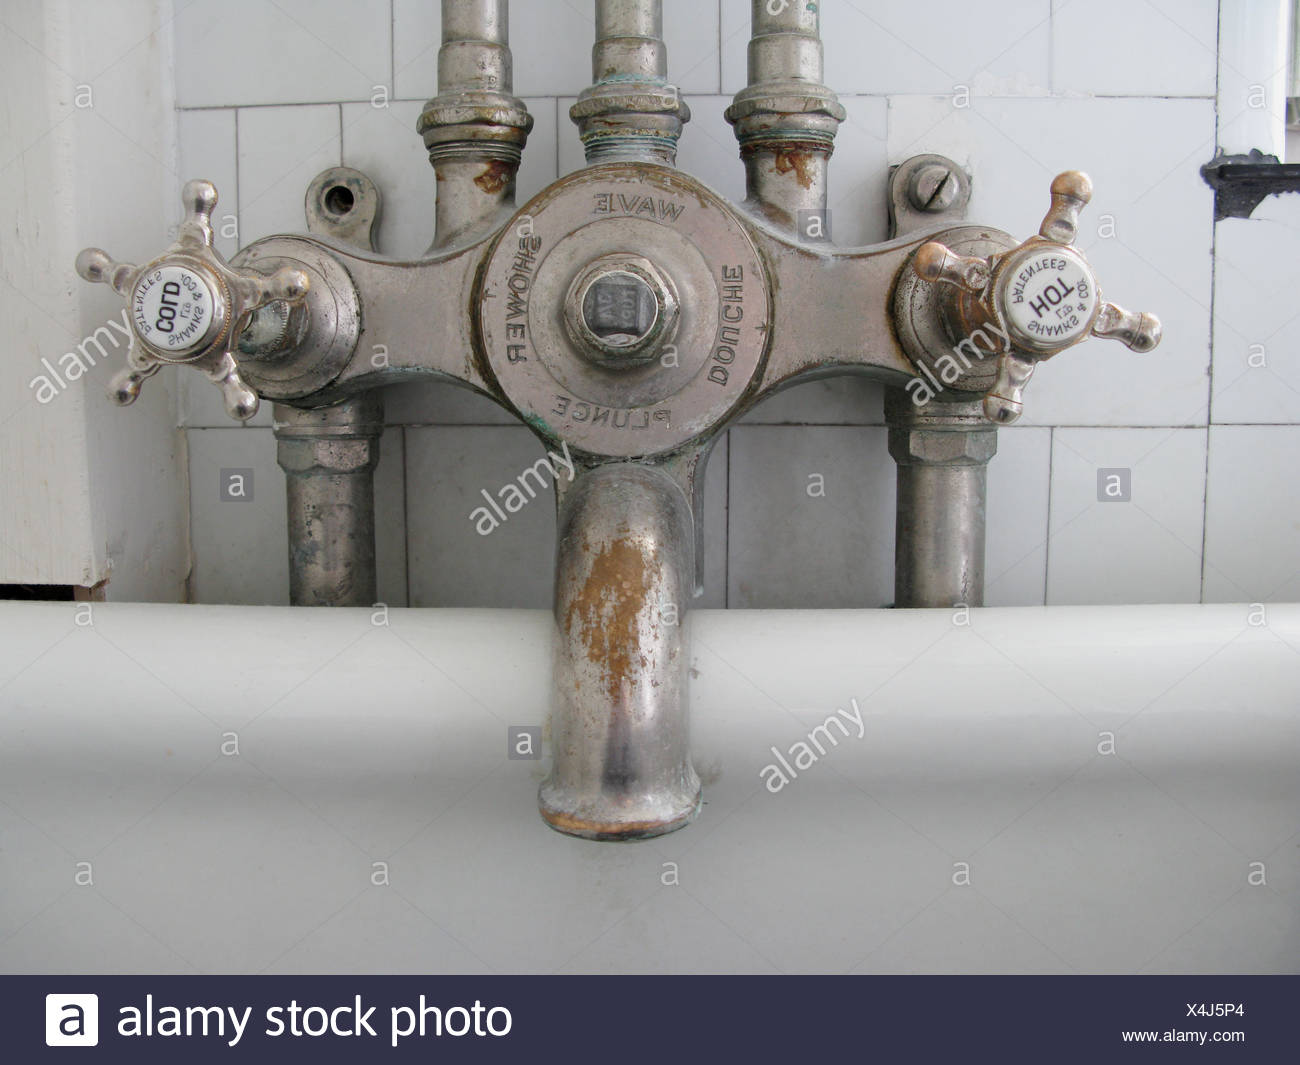 Old Taps Stock Photos & Old Taps Stock Images - Alamy